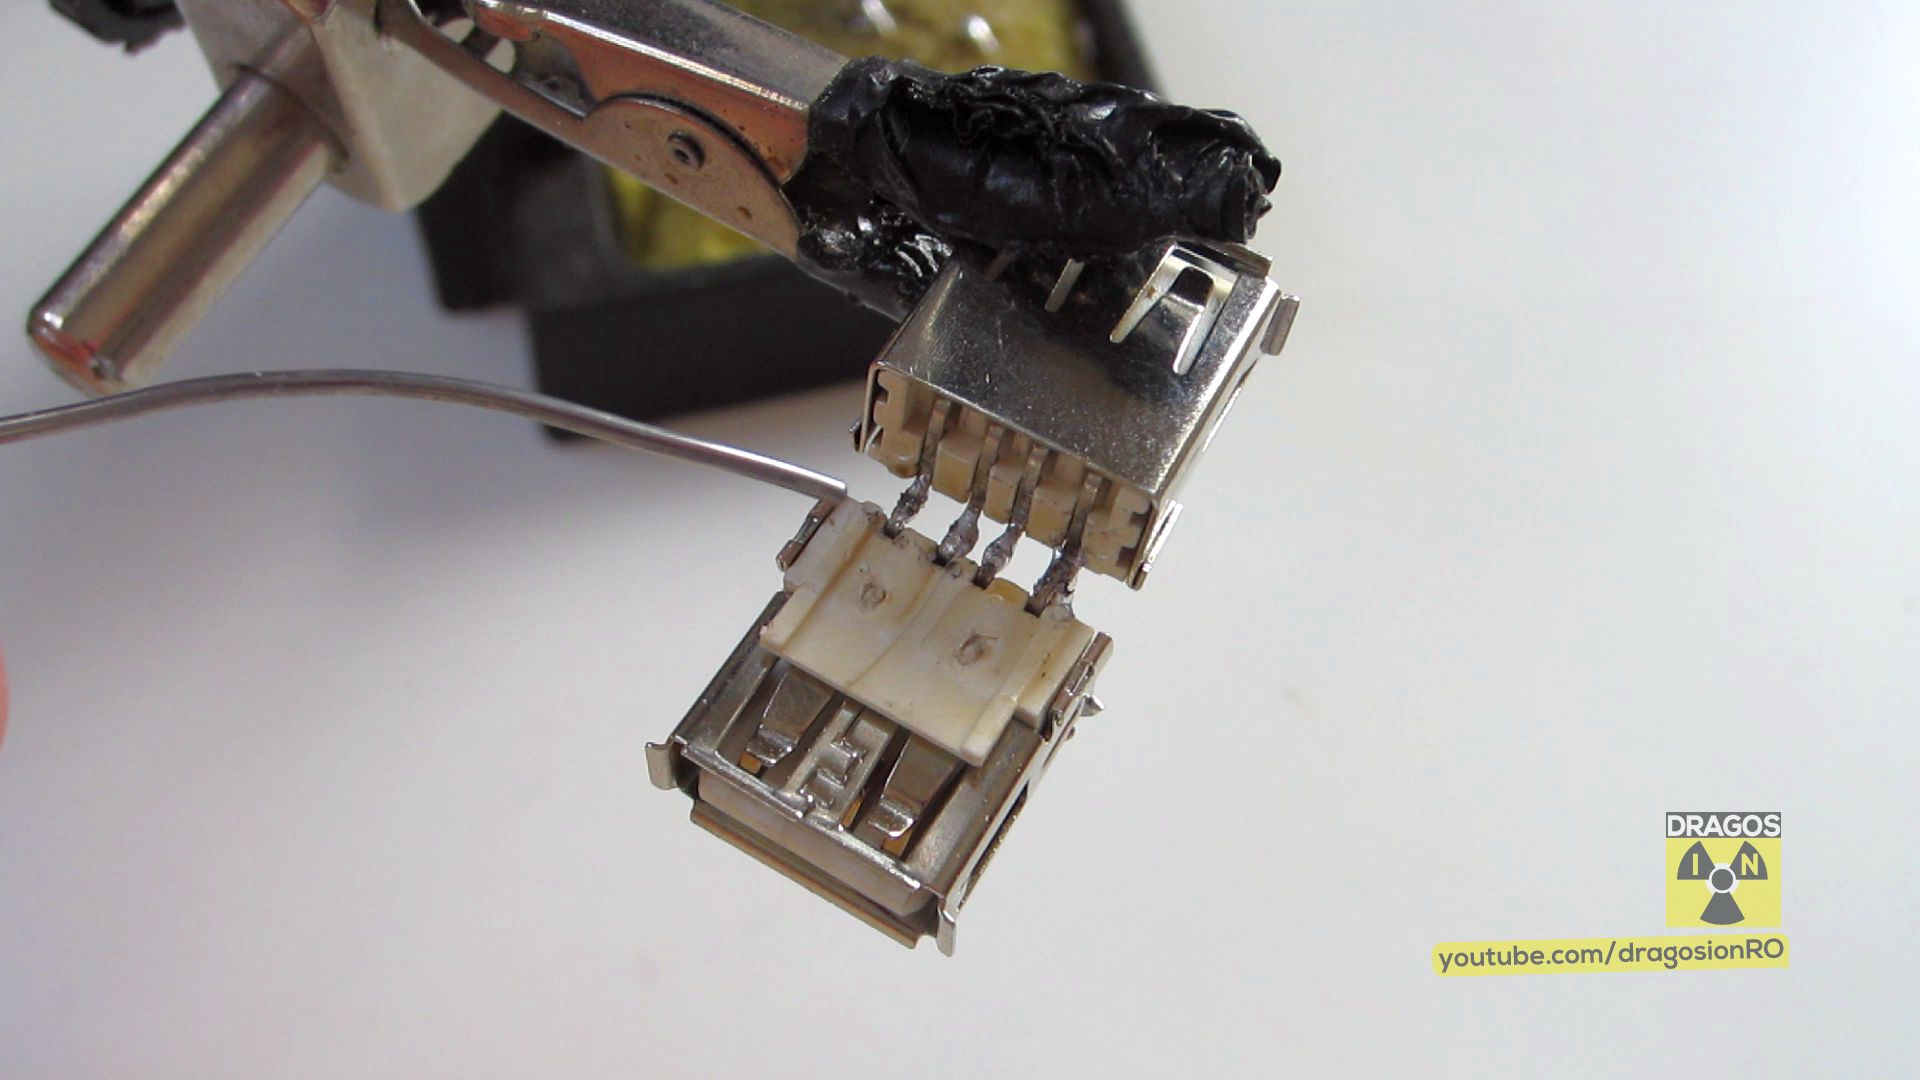 Updating The Electronics With A Pcb Do I Clip The Quick Connectors